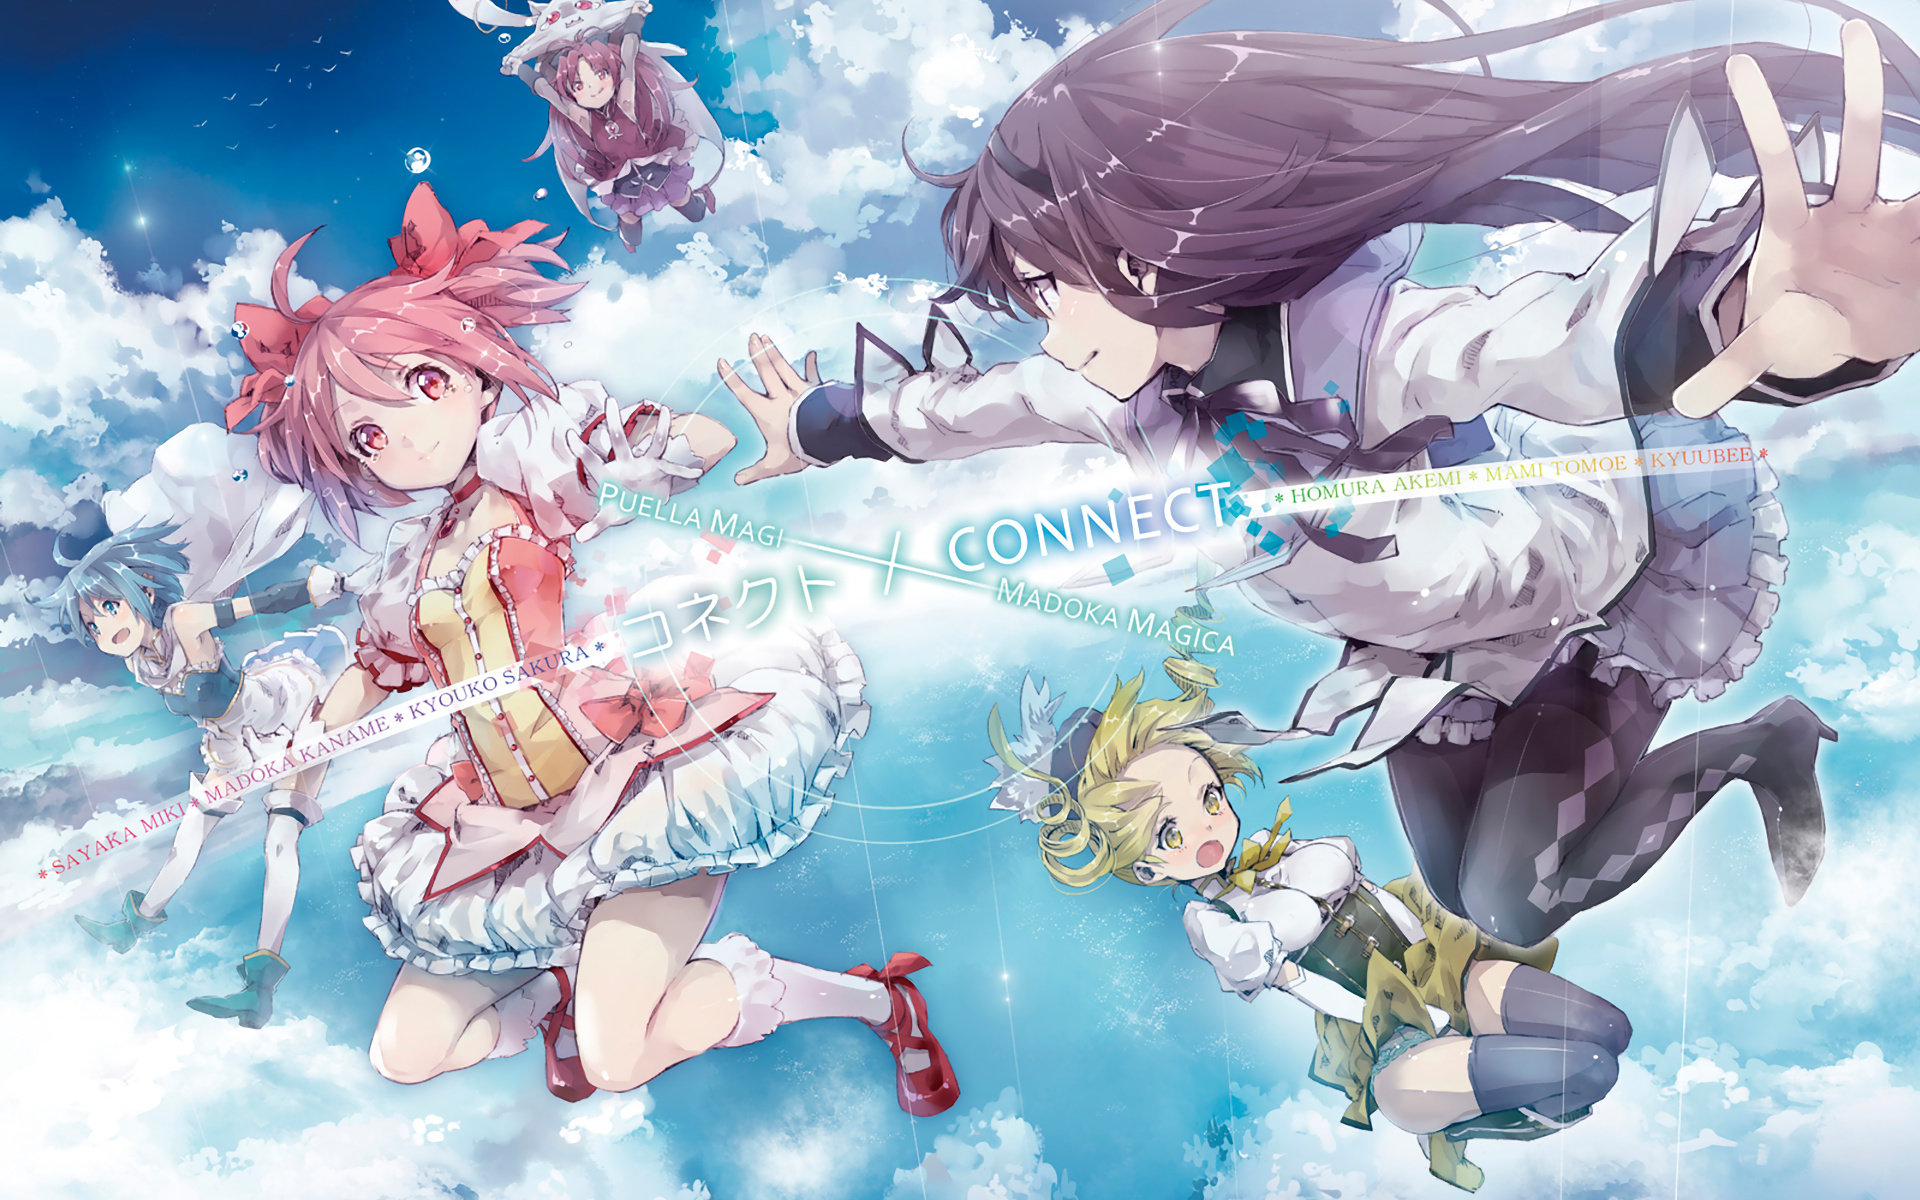 Download hd 1920x1200 Puella Magi Madoka Magica PC wallpaper ID:31612 for free